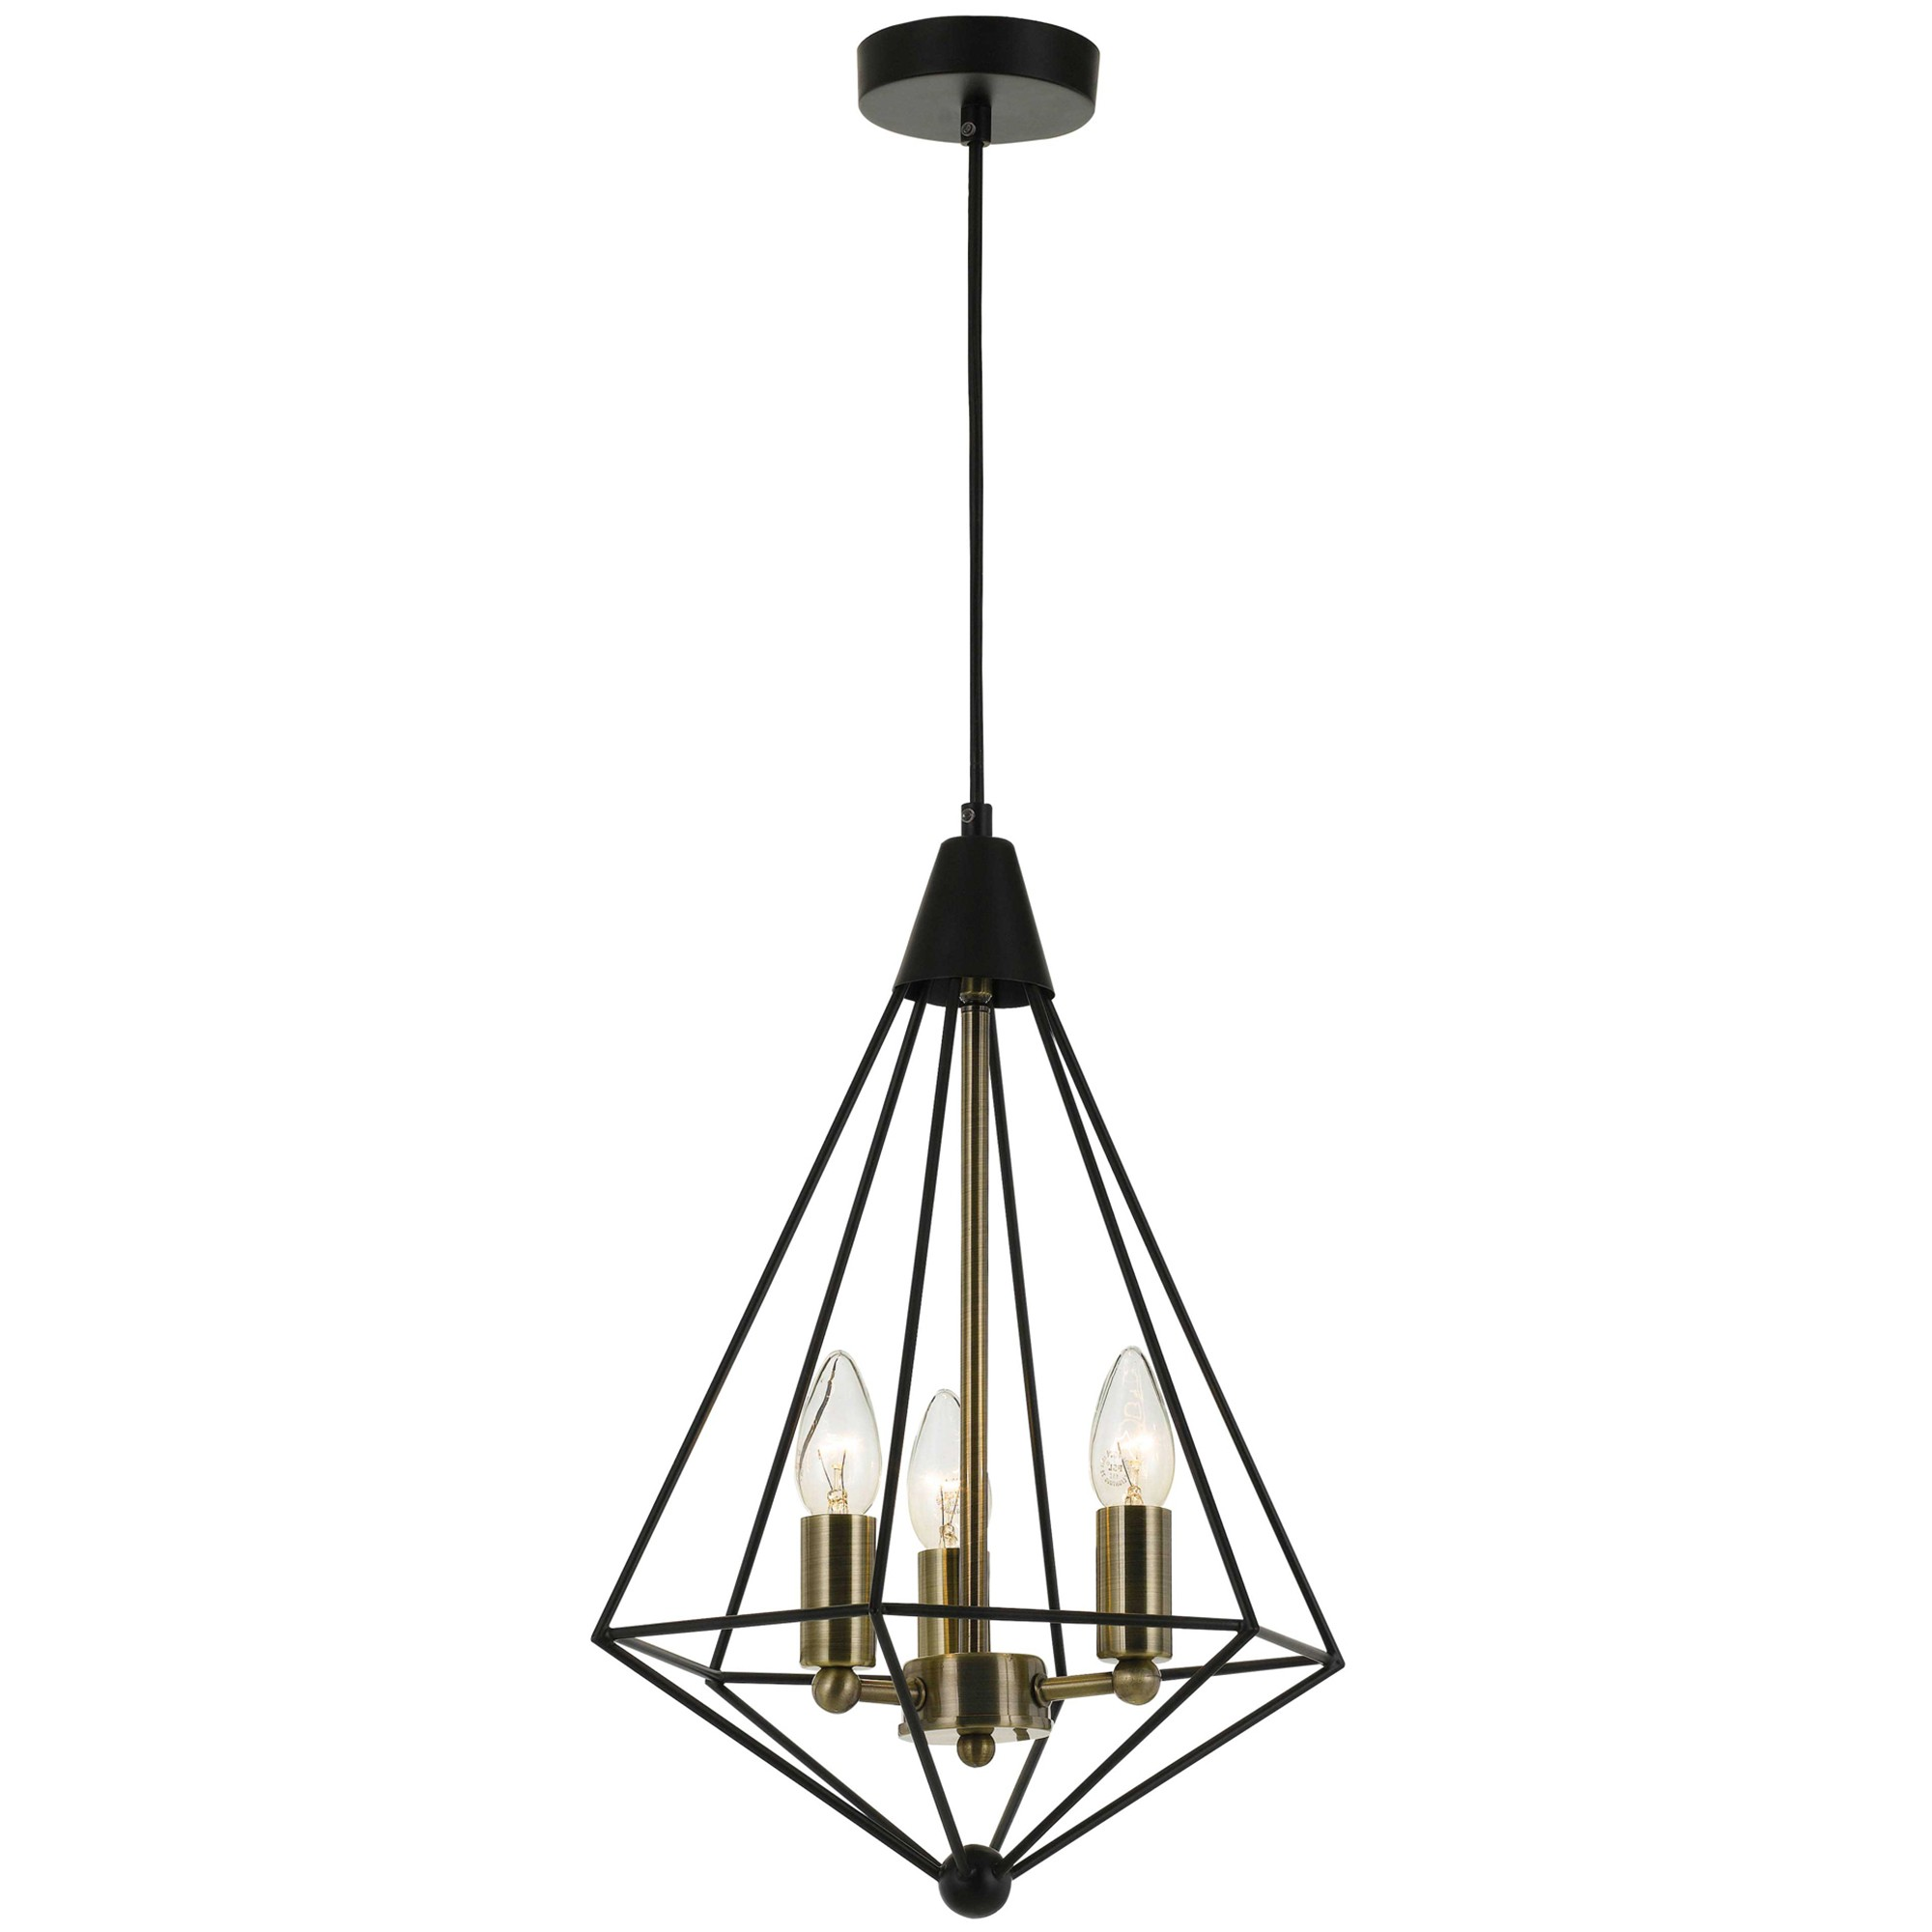 Delgany Metal Pendant Light, Small, Black / Antique Brass